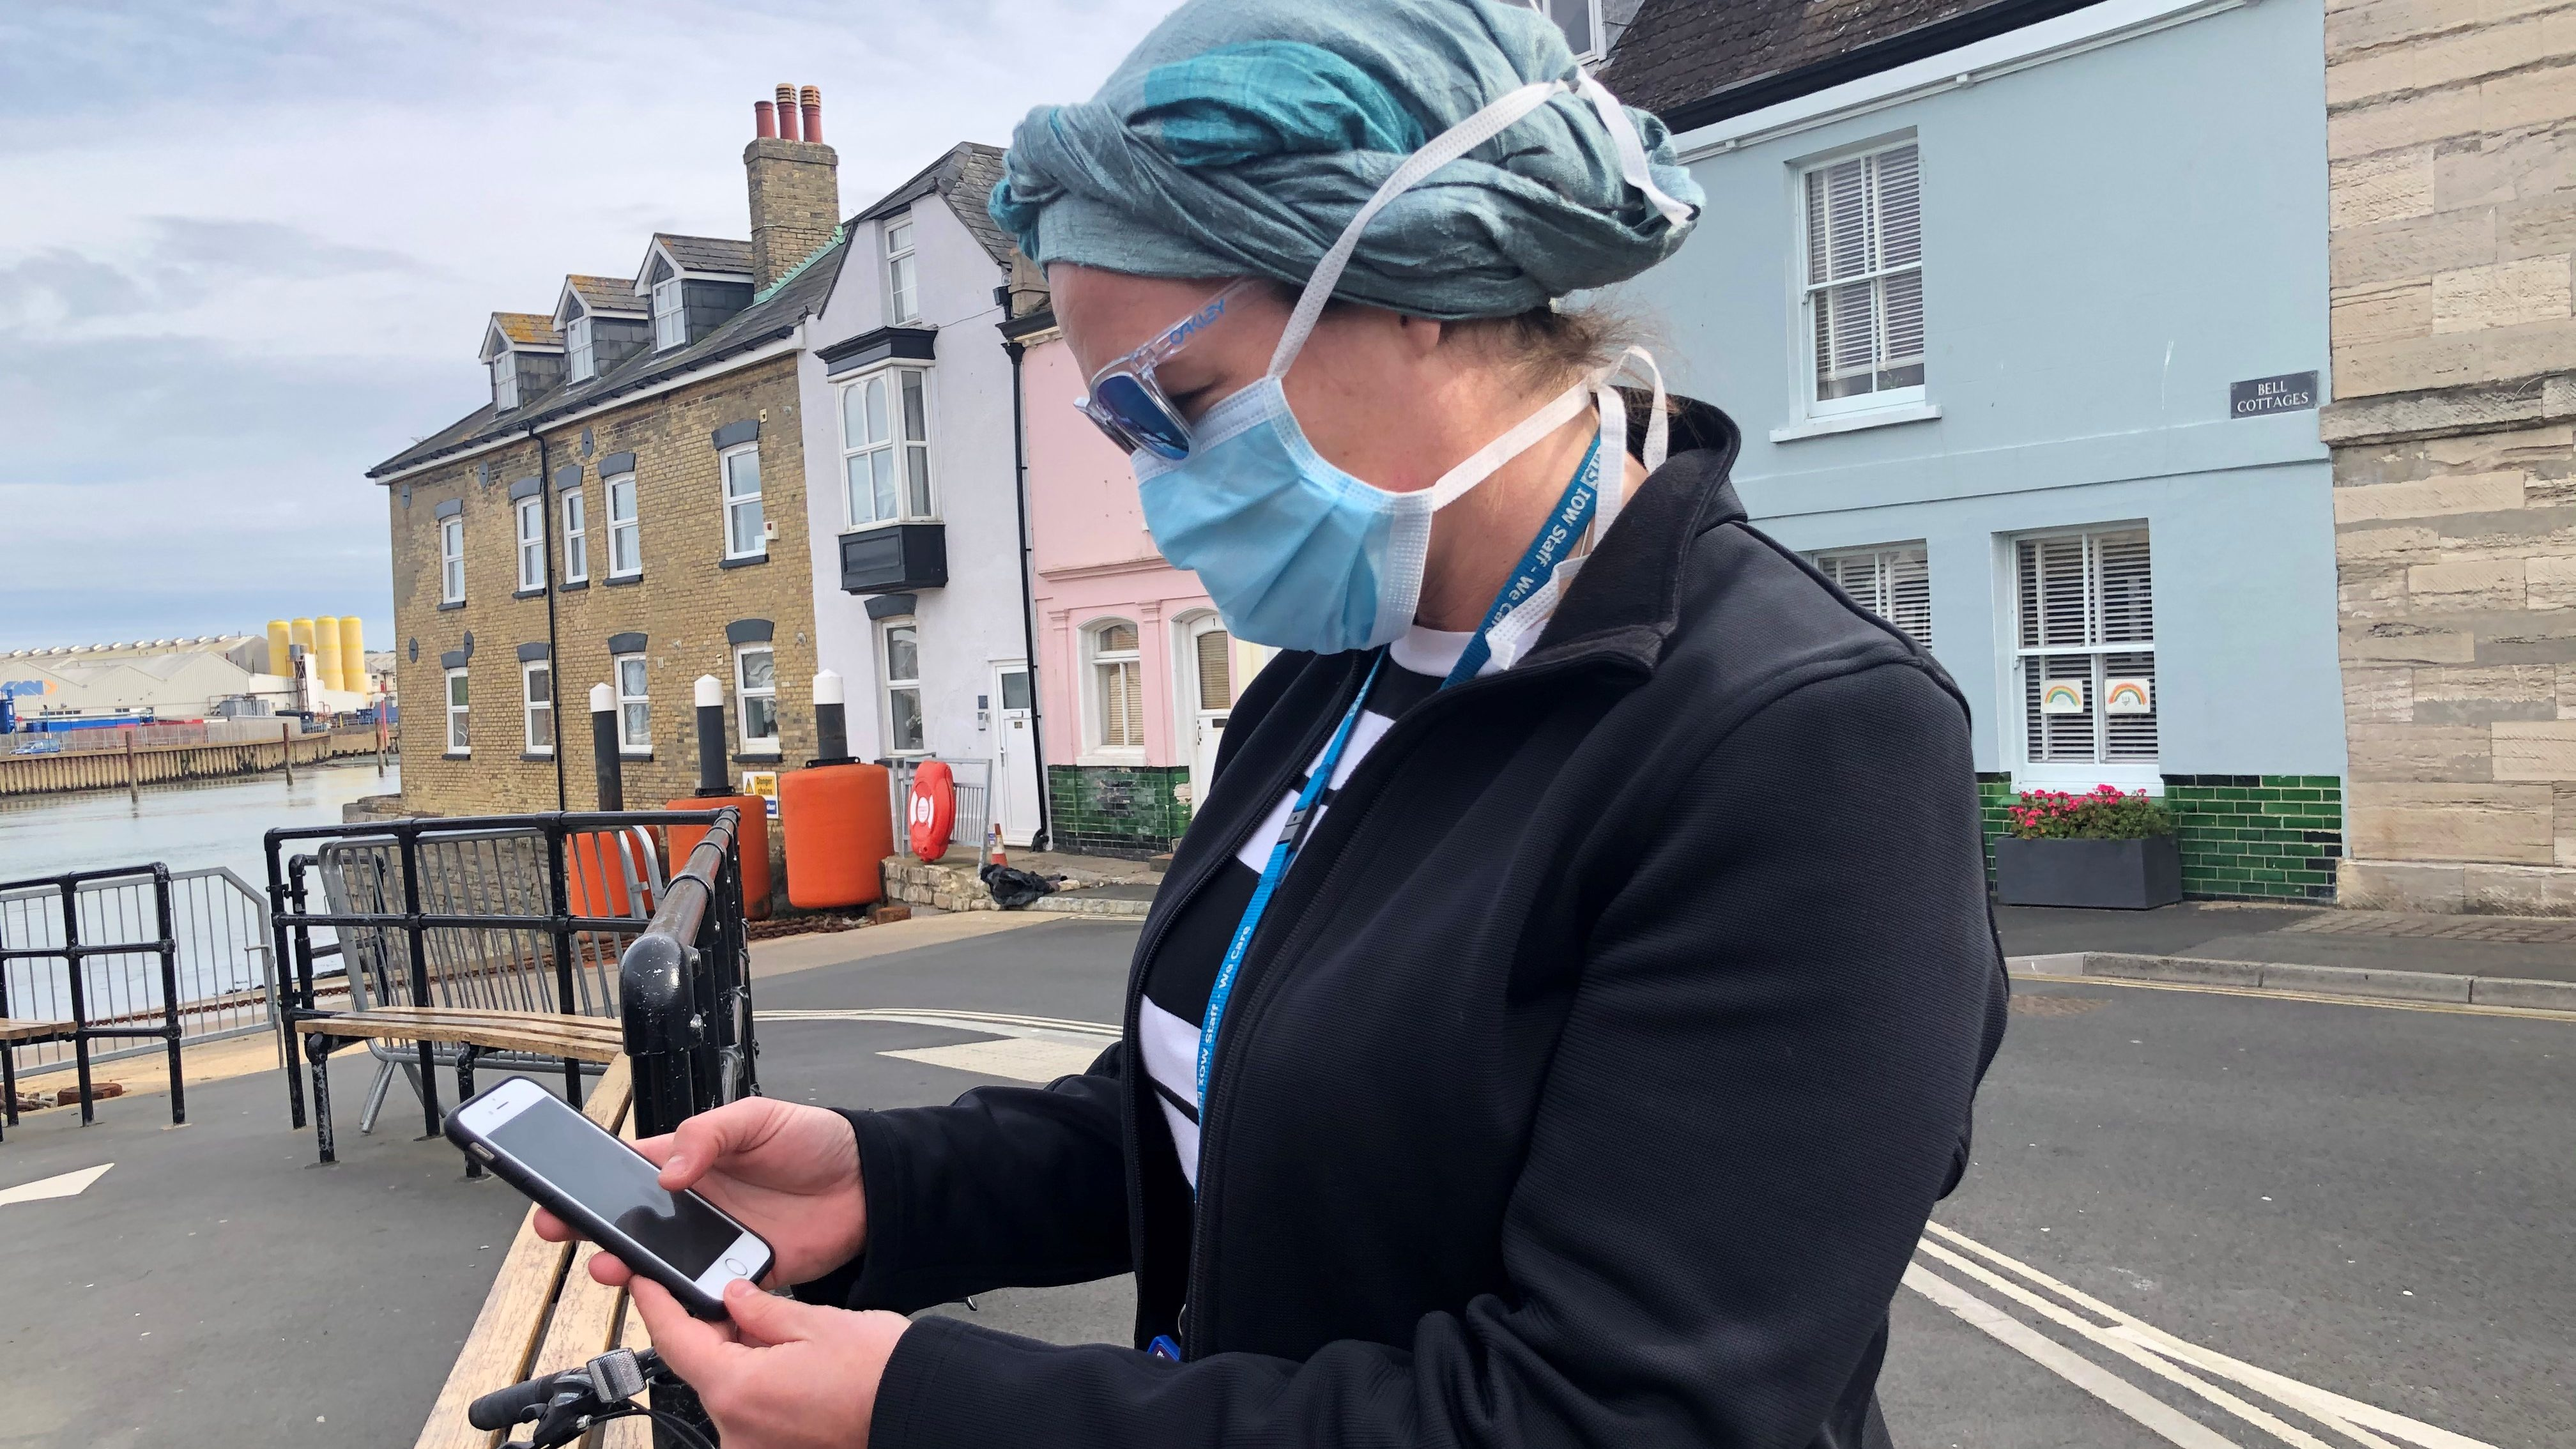 UK National Health Service employee looks at new NHS app to trace contacts with people potentially infected with the coronavirus disease (COVID-19) being trialled in the UK.